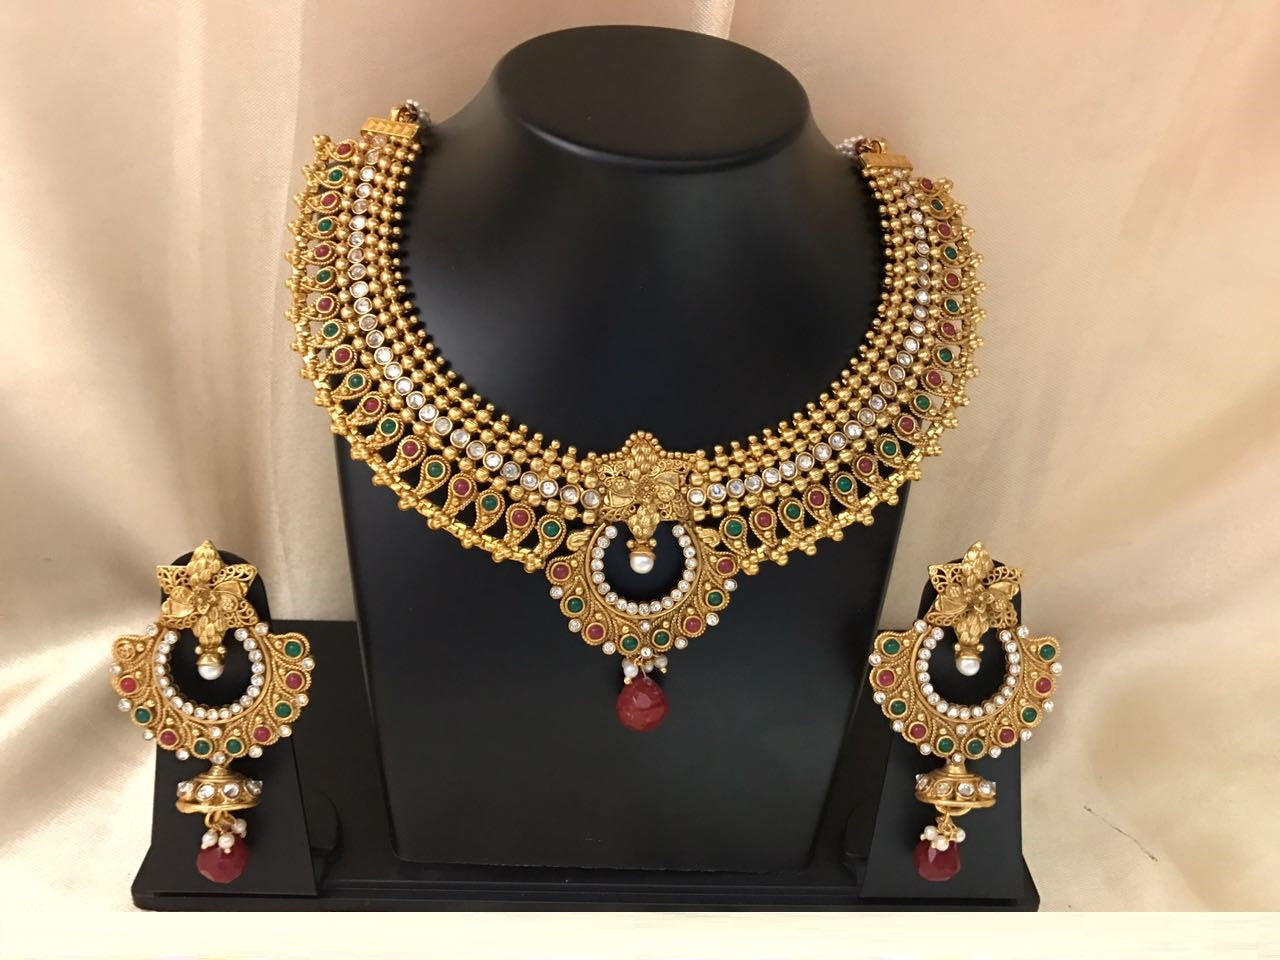 Beautiful Necklace with Chandbali Pendant and Earrings